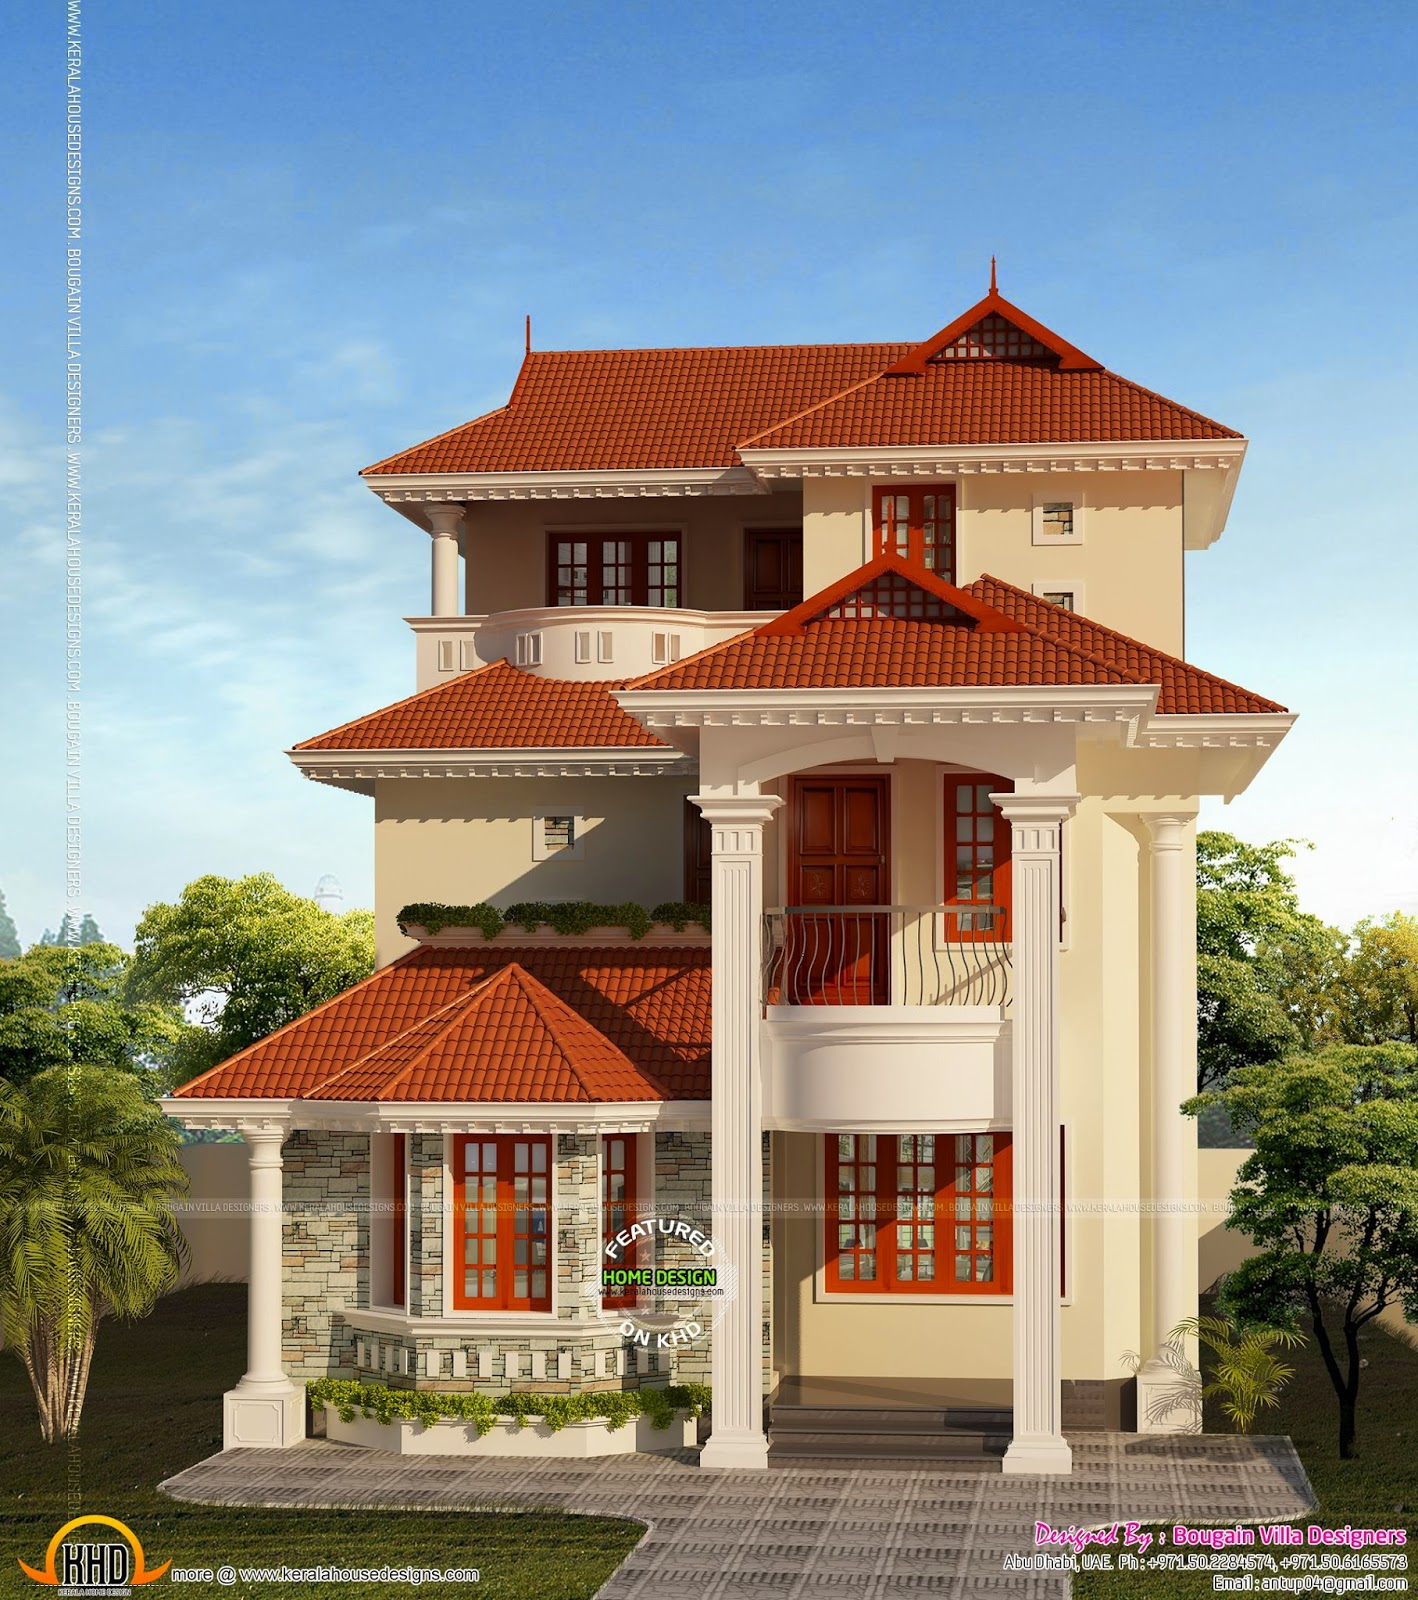 Small plot house plan kerala home design and floor plans Good house designs in india